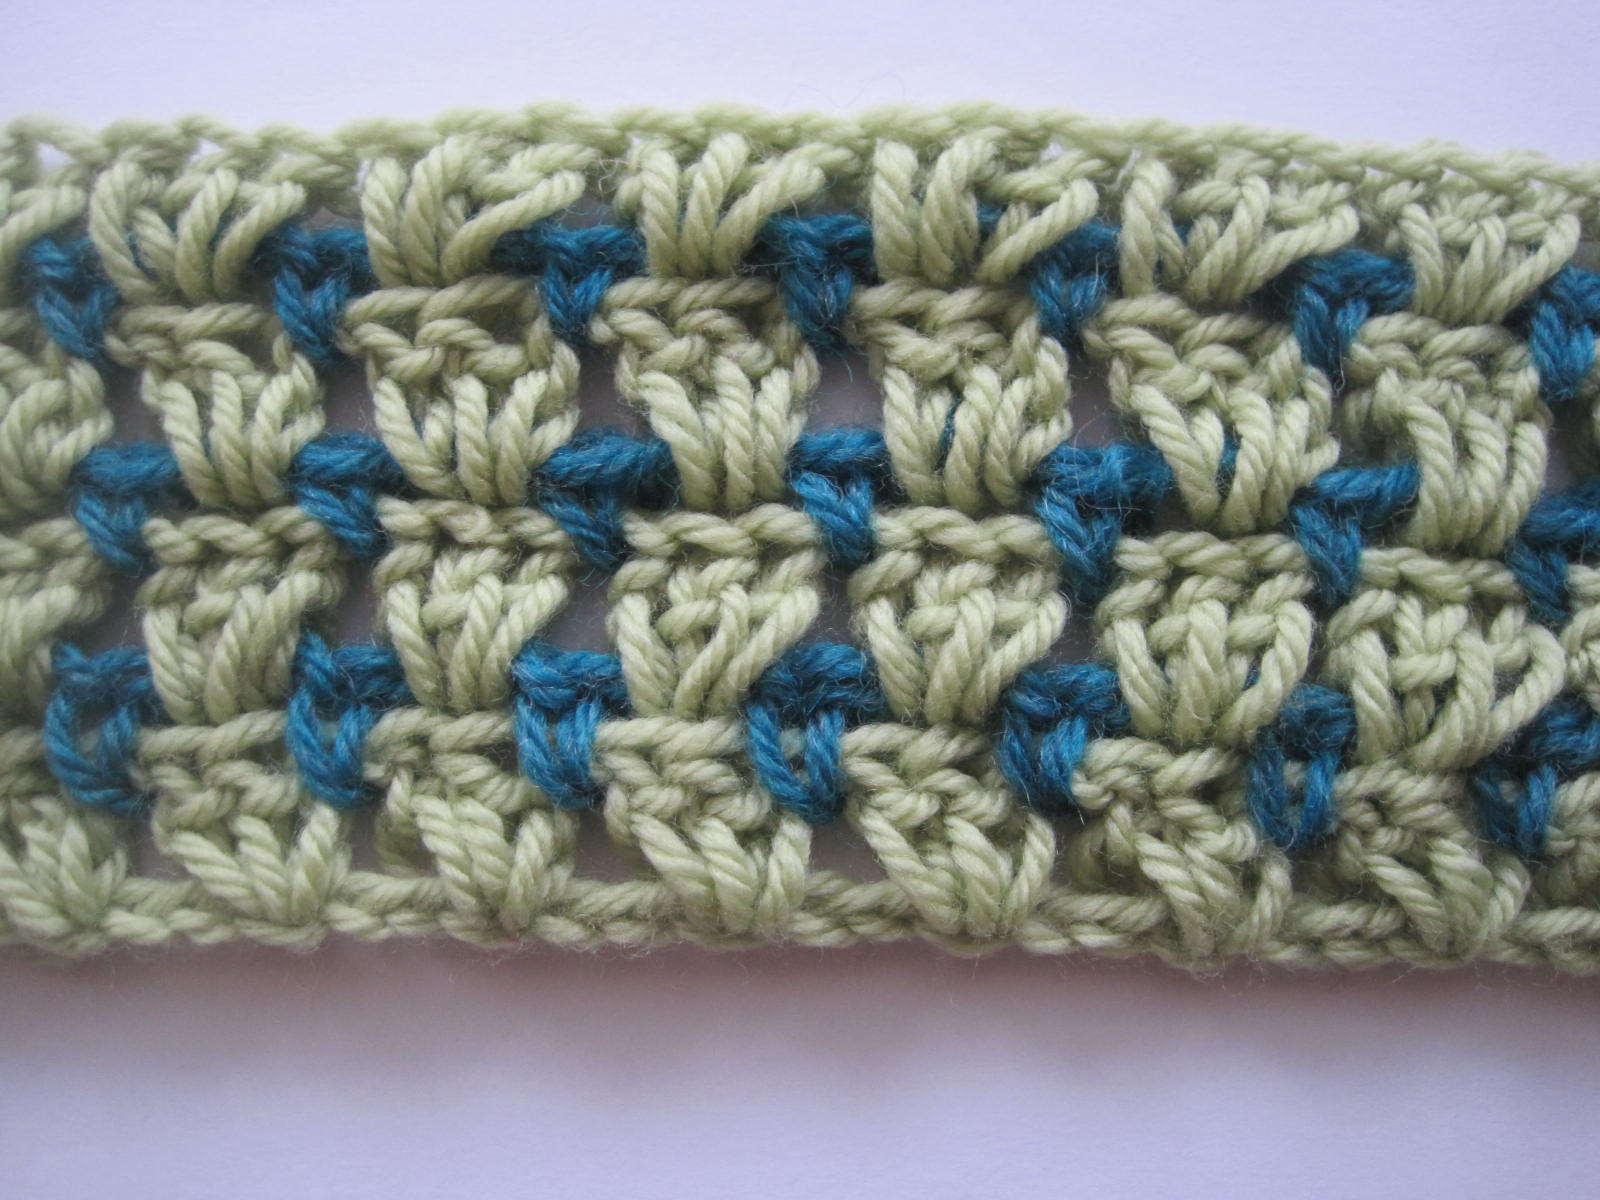 Crochet Multiple Colors : Crochet Spot ? Blog Archive ? How to Crochet: Multi-Colored Stitches ...